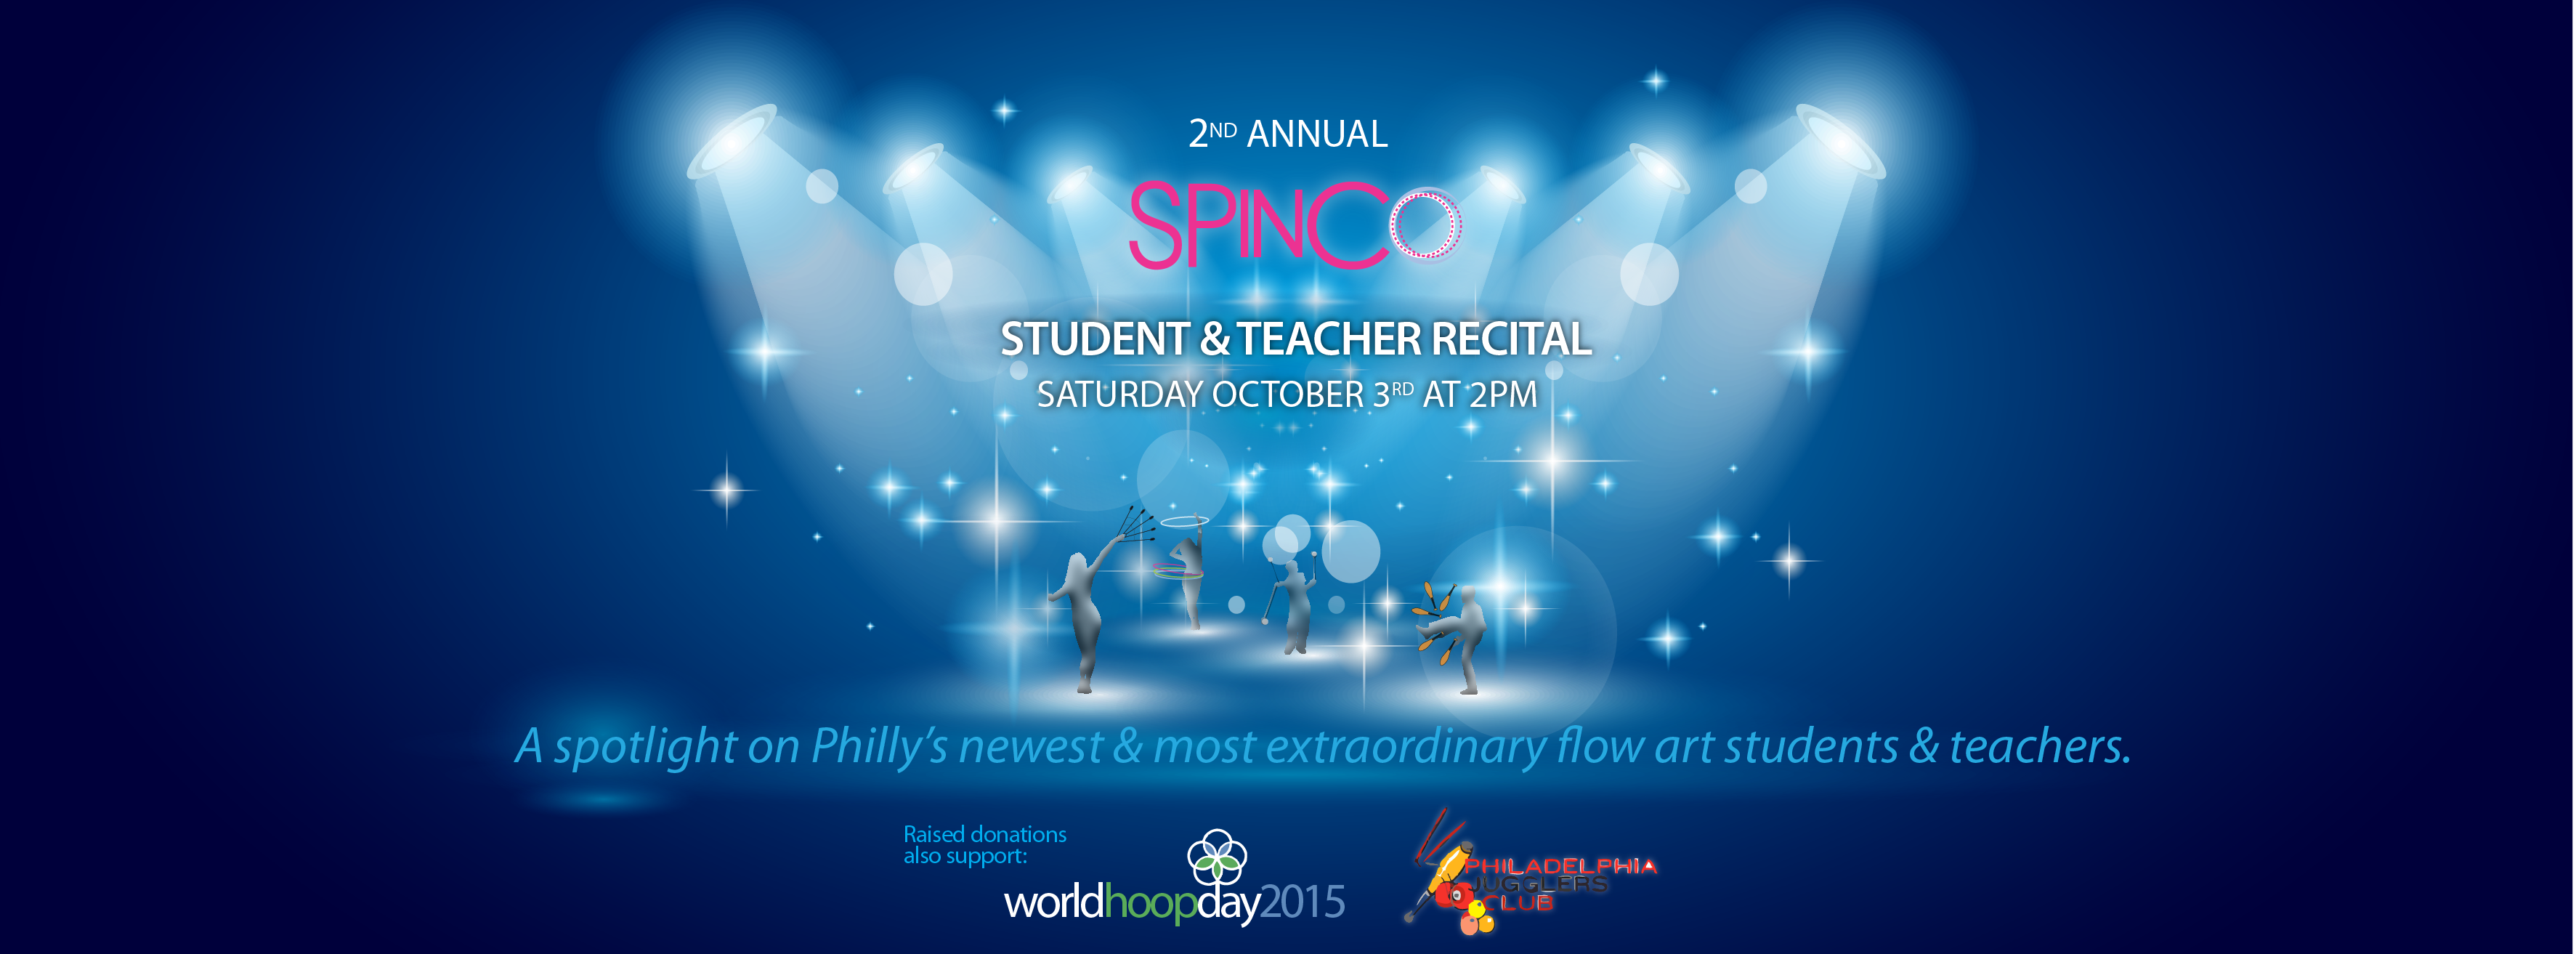 Student Teacher Recital Flyer 01